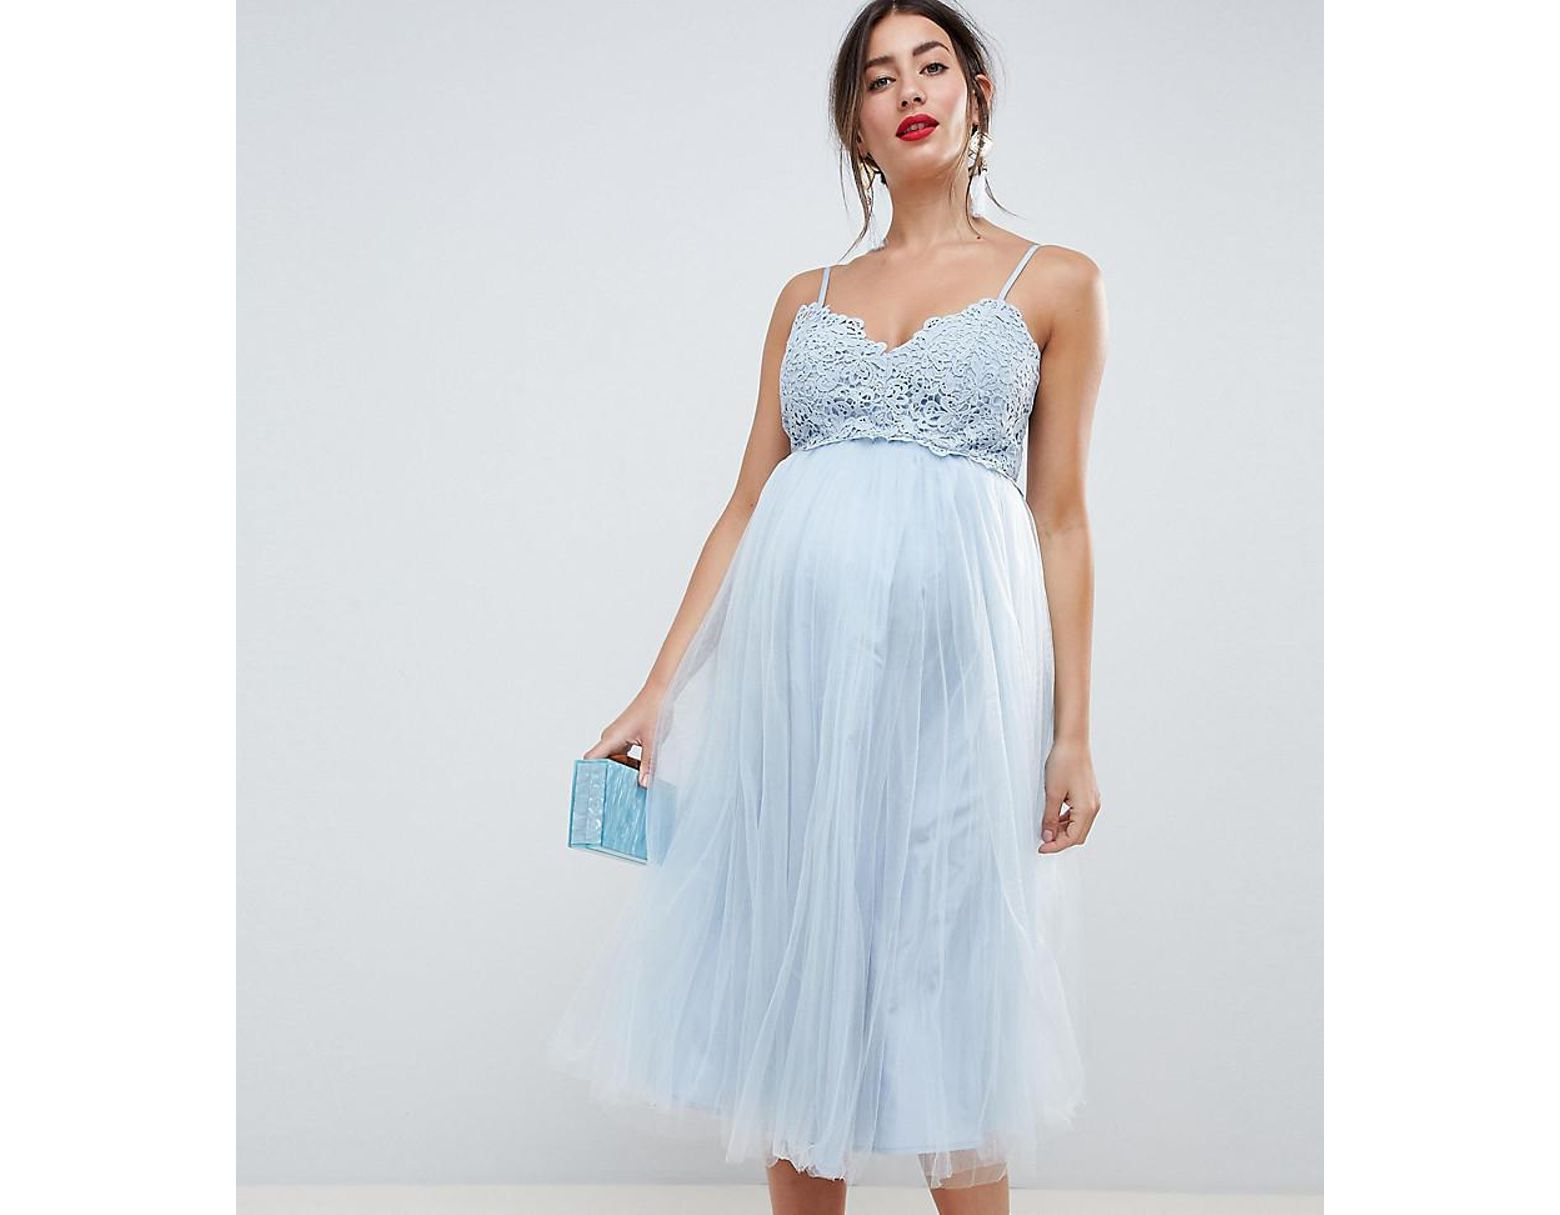 b1f248f9a9722 ASOS Asos Design Maternity Premium Lace Cami Top Tulle Midi Dress in Blue -  Lyst